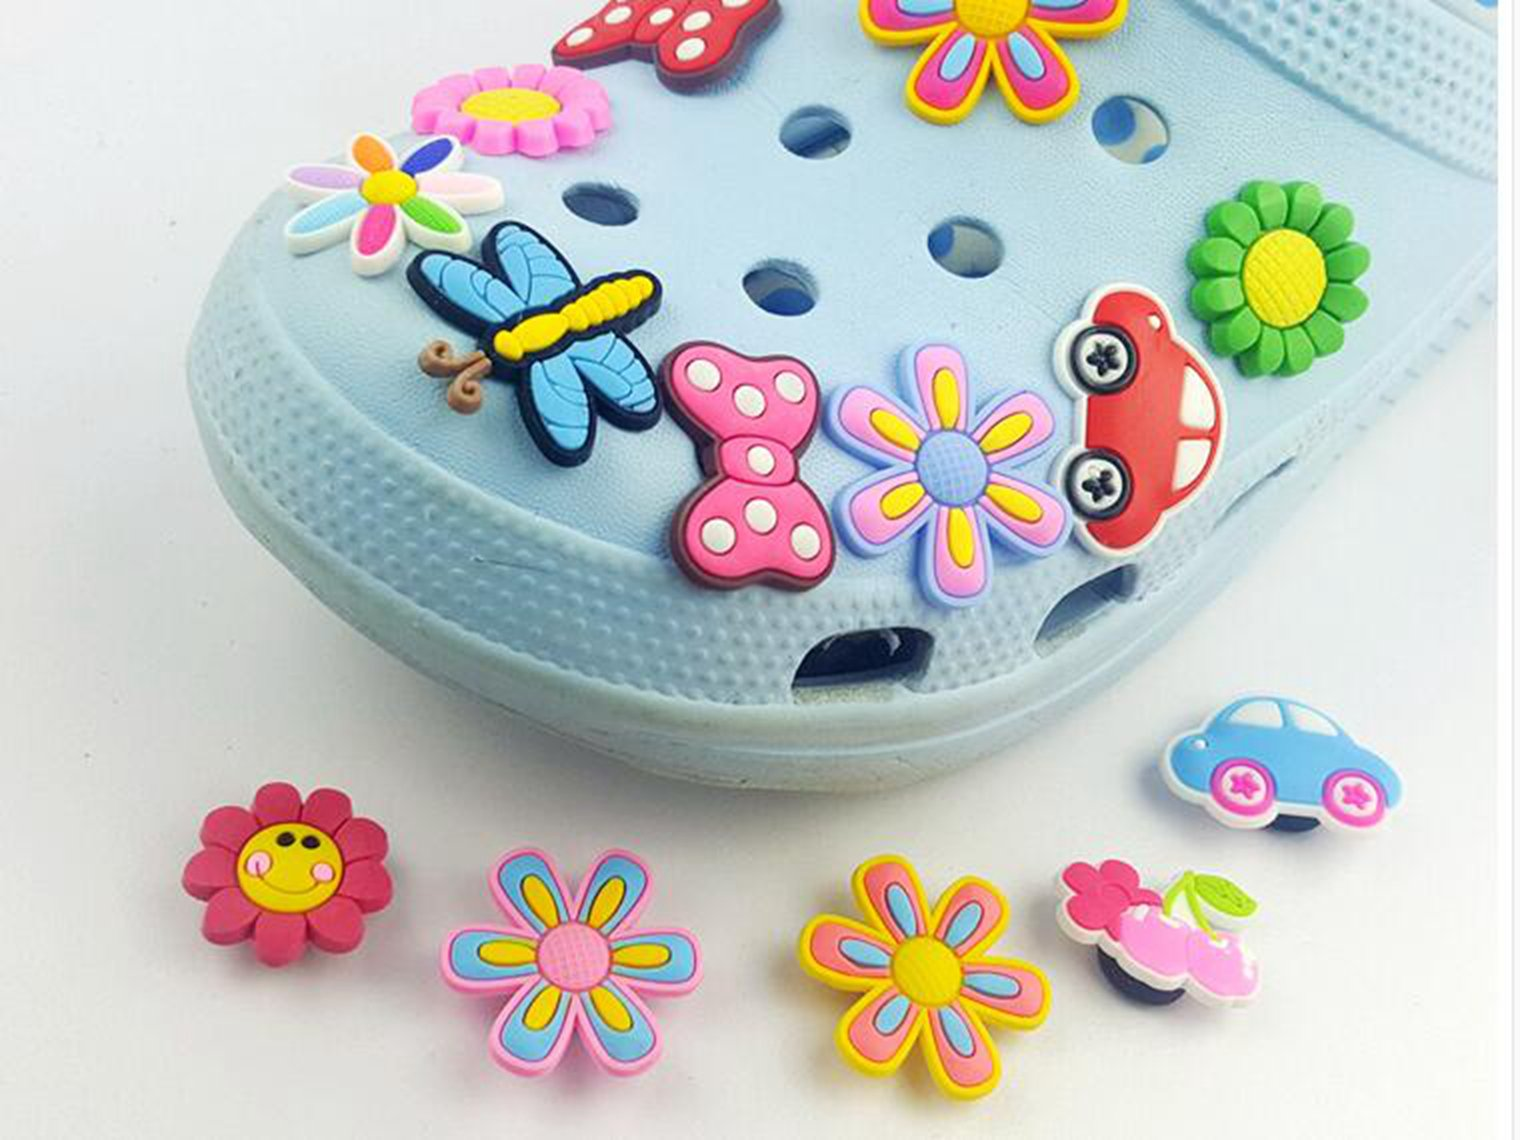 YAOYAO 100 Pcs PVC Shoe Charms Fit Crocs & Bands Bracelet,mix color by YAOYAO (Image #7)